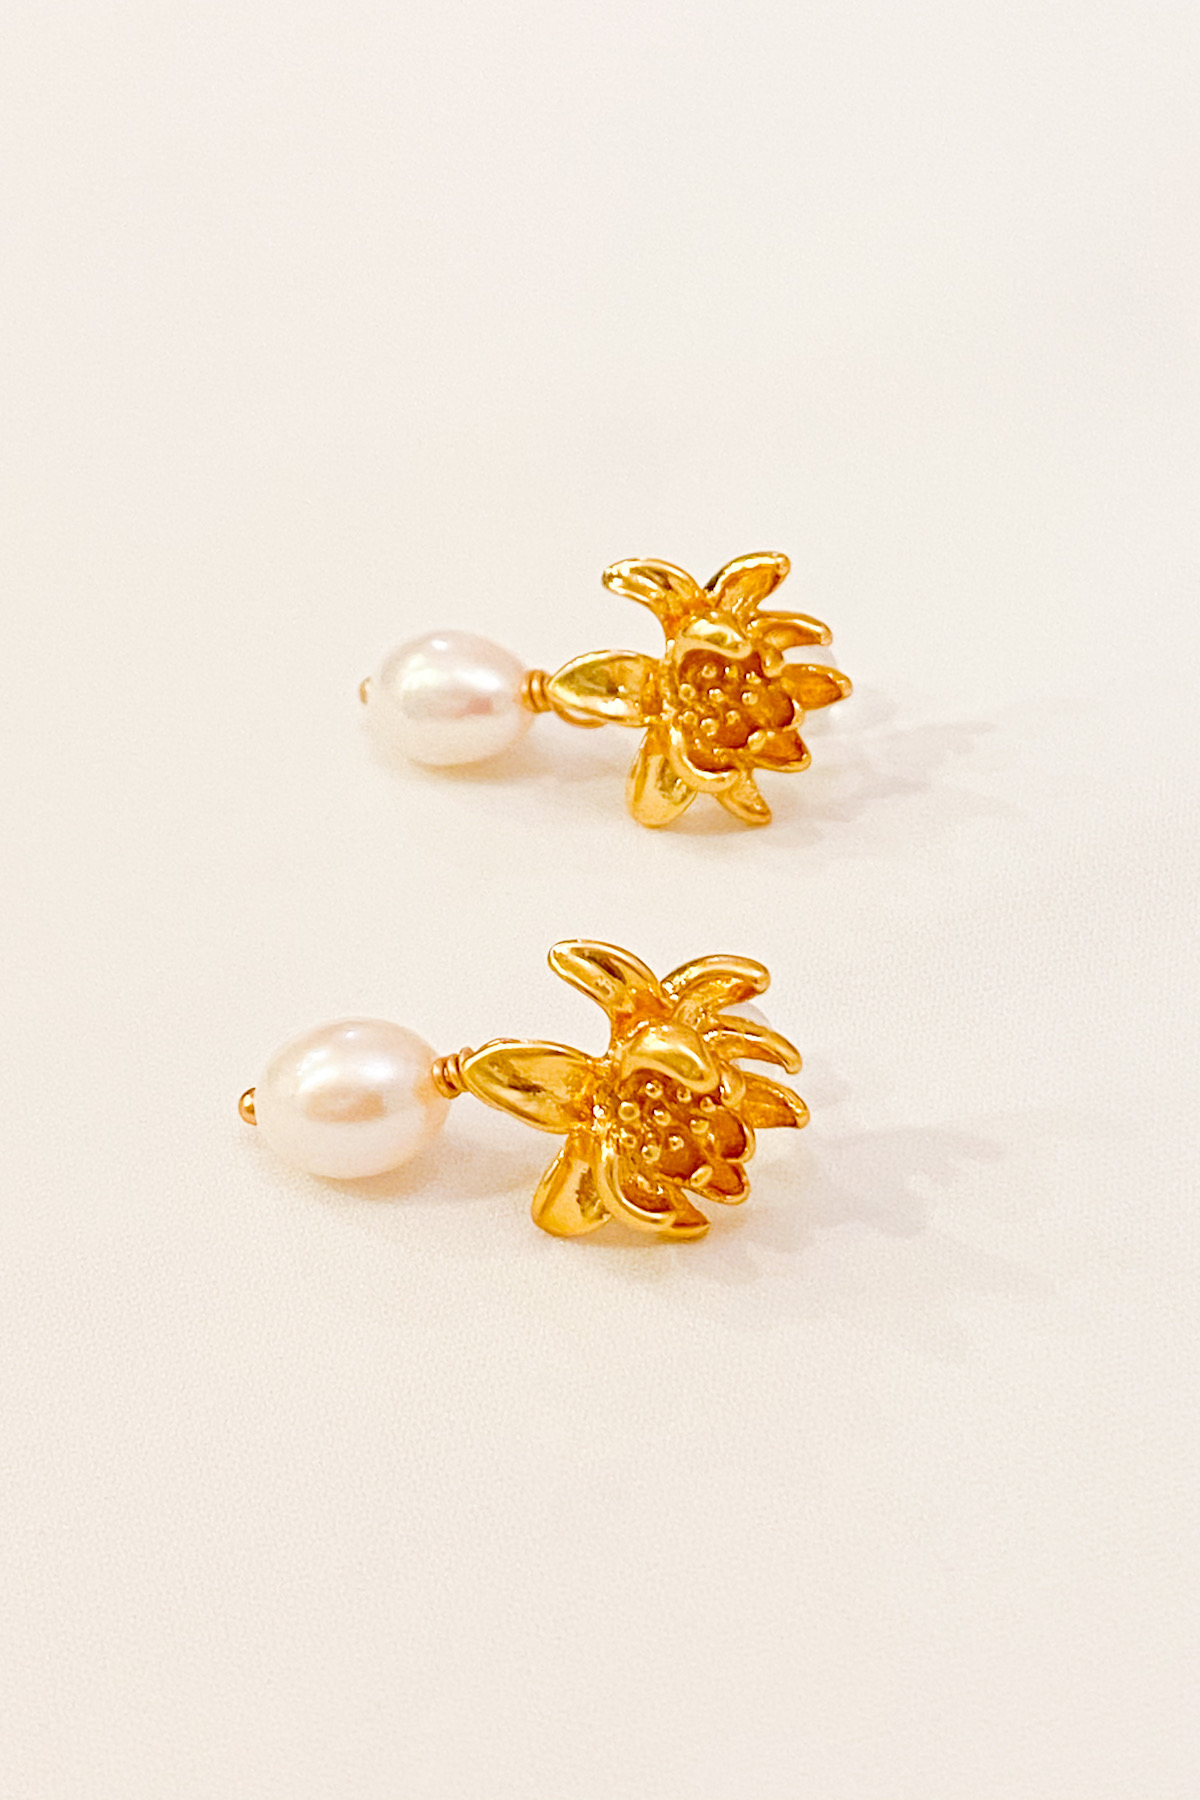 SKYE San Francisco Shop SF Chic Modern Elegant Classy Women Jewelry French Parisian Minimalist Marguerite 18K Gold Freshwater Pearl Earrings 2